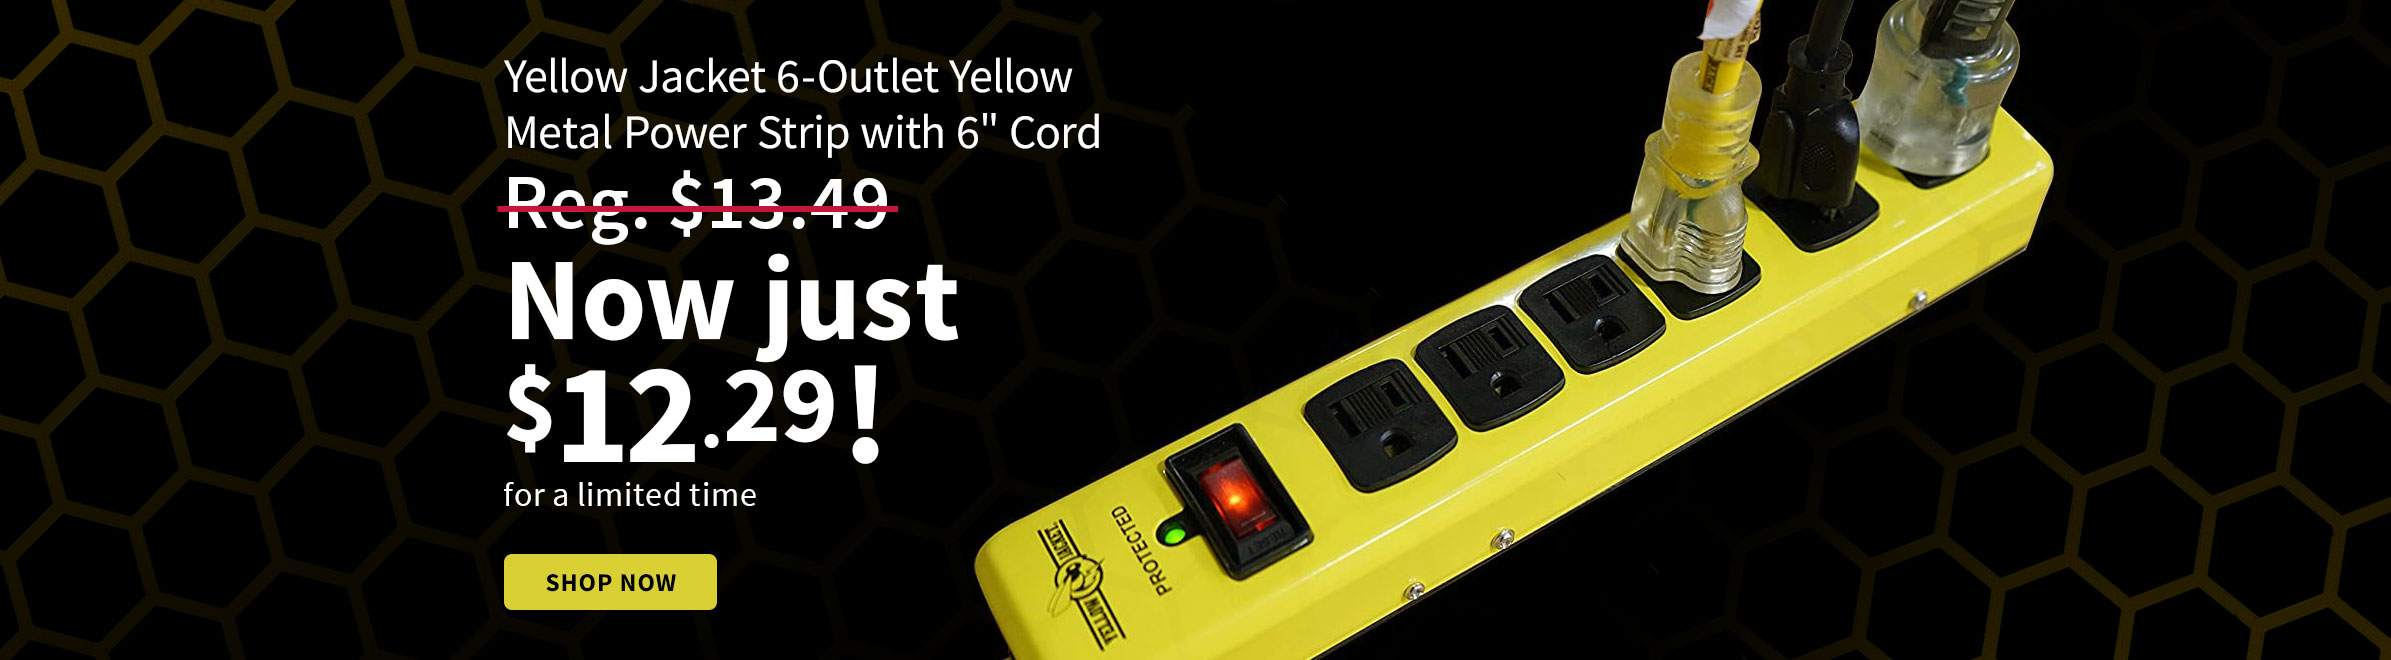 Yellow Jacket 6-Outlet Yellow Metal Power Strip with 6 Ft. Cord